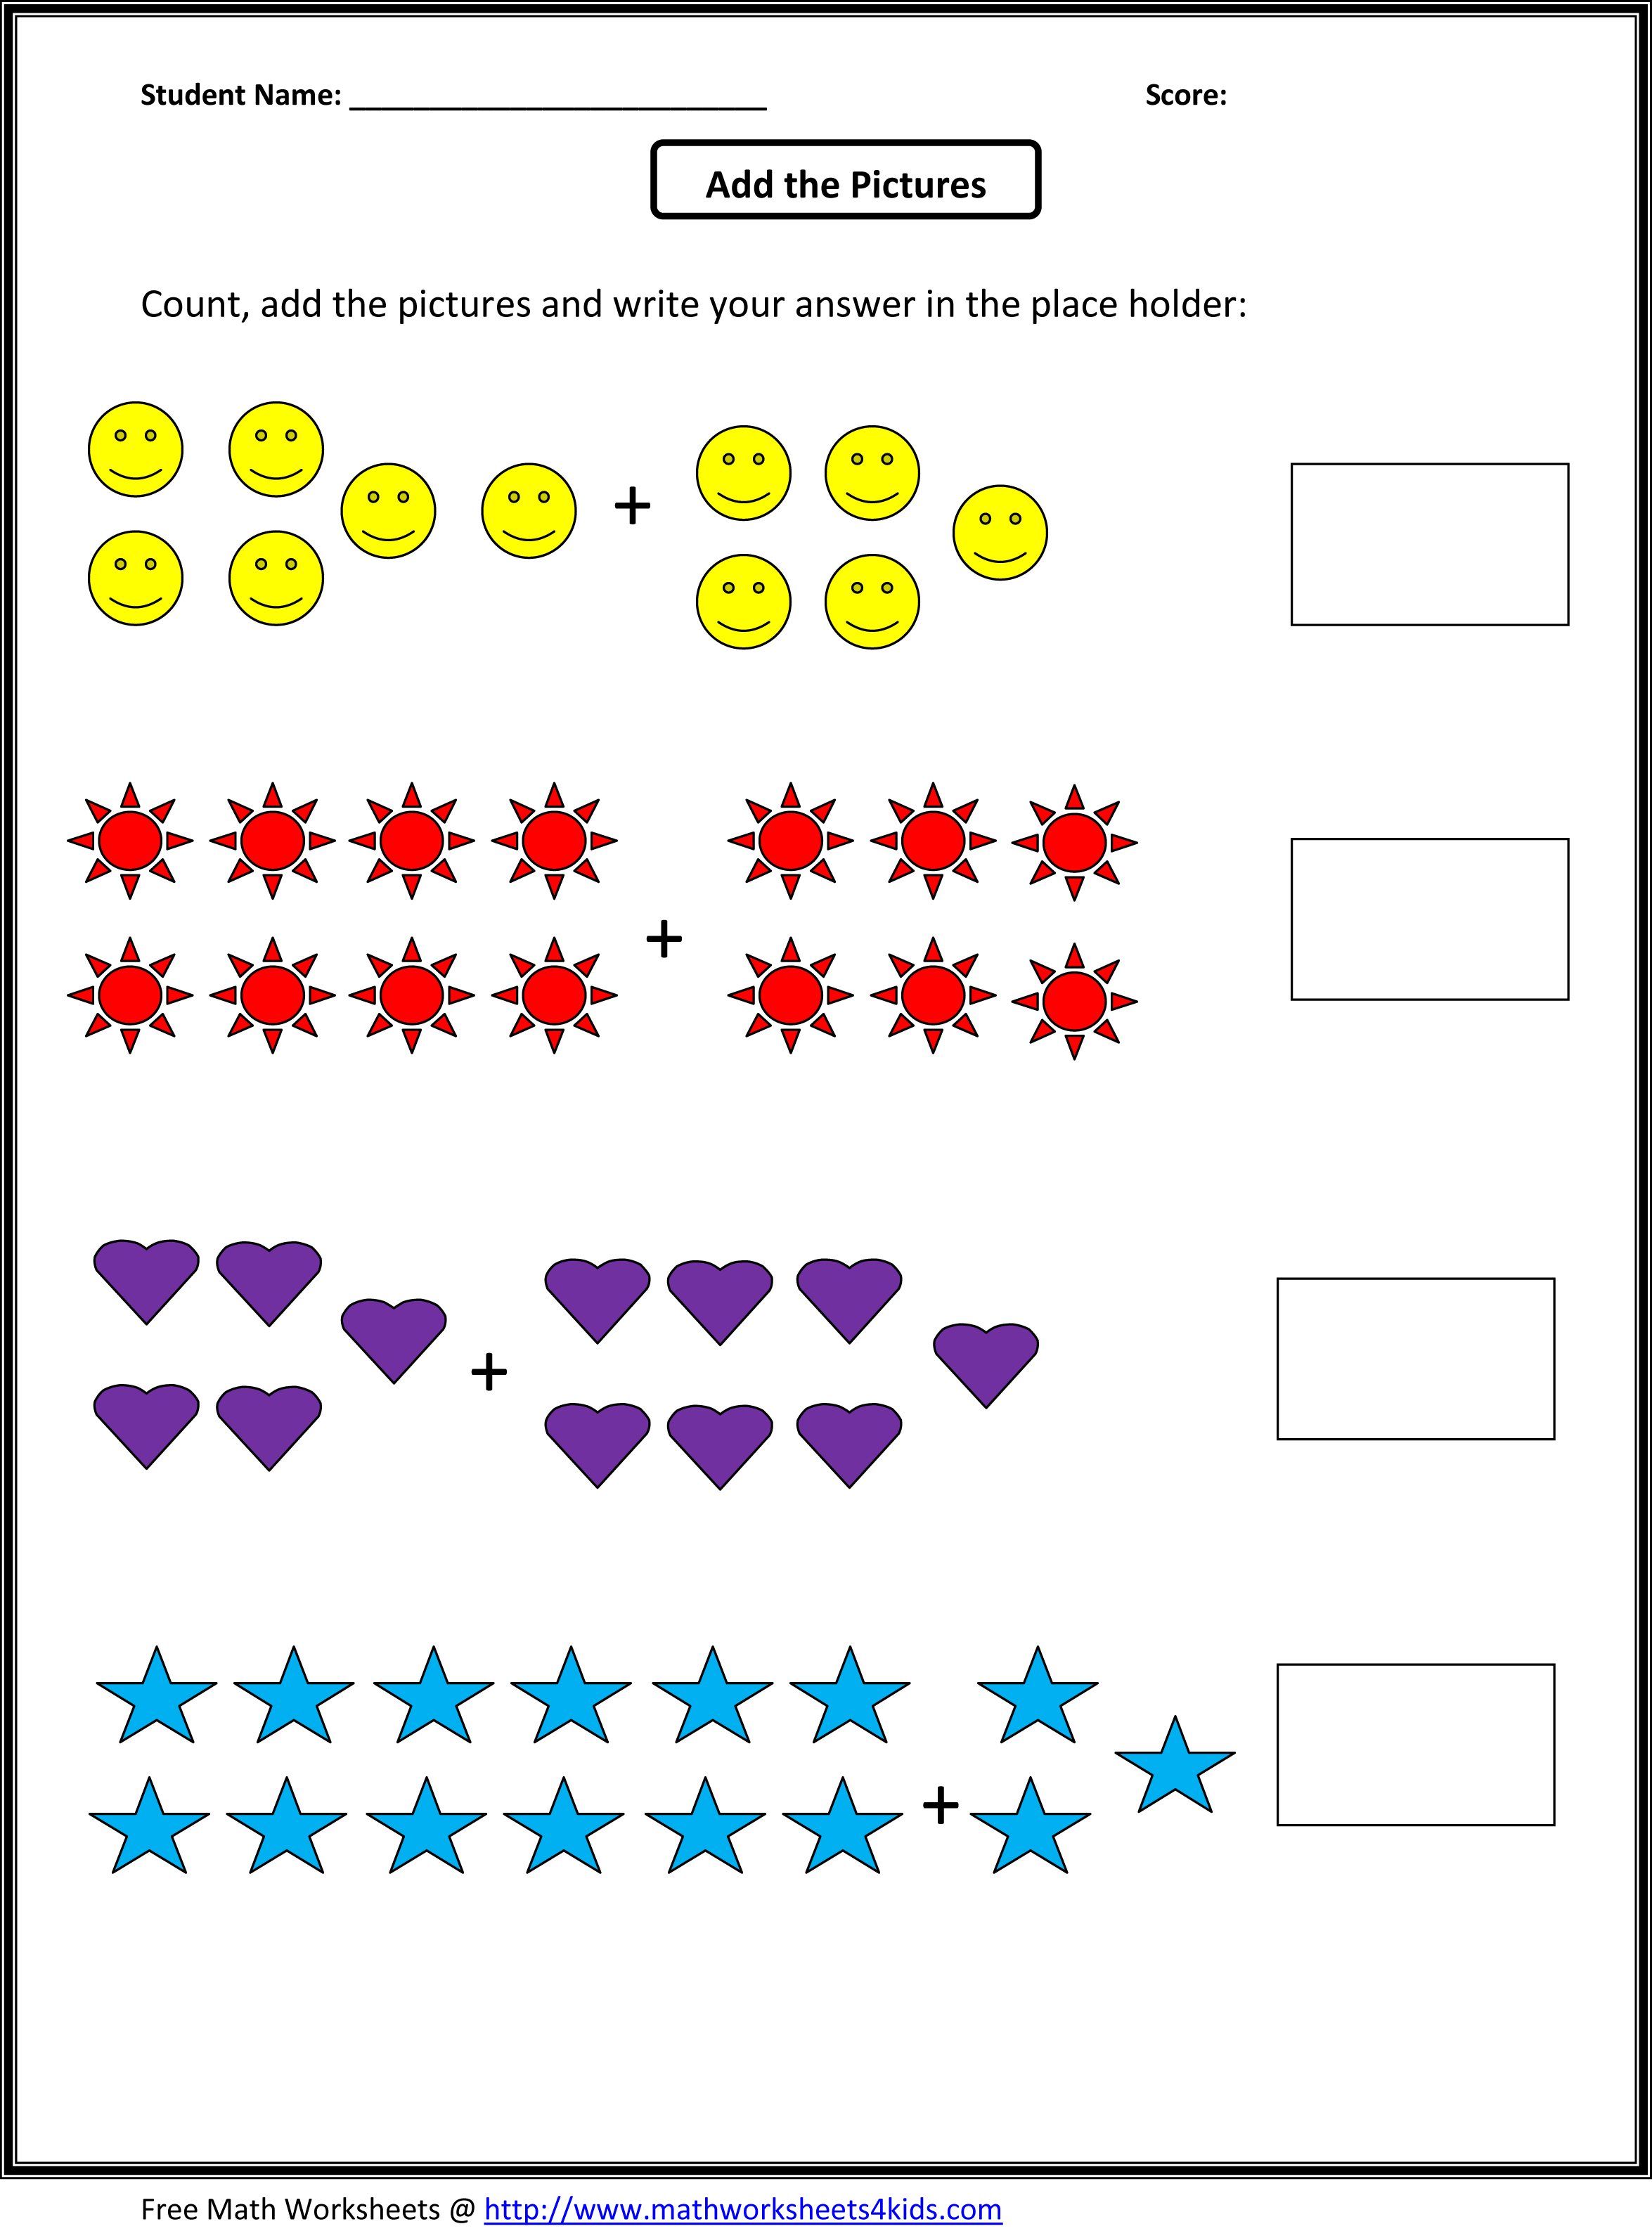 Weirdmailus  Pretty Grade  Maths Worksheet  Reocurent With Handsome Math Worksheets For St Grade Free  Reocurent With Alluring Function Worksheet Algebra  Also Identifying Verbs Worksheets In Addition First Grade Map Skills Worksheets And Drawing Triangles Worksheet As Well As Premarital Worksheets Additionally Scarlet Letter Worksheets From Reocurentcom With Weirdmailus  Handsome Grade  Maths Worksheet  Reocurent With Alluring Math Worksheets For St Grade Free  Reocurent And Pretty Function Worksheet Algebra  Also Identifying Verbs Worksheets In Addition First Grade Map Skills Worksheets From Reocurentcom